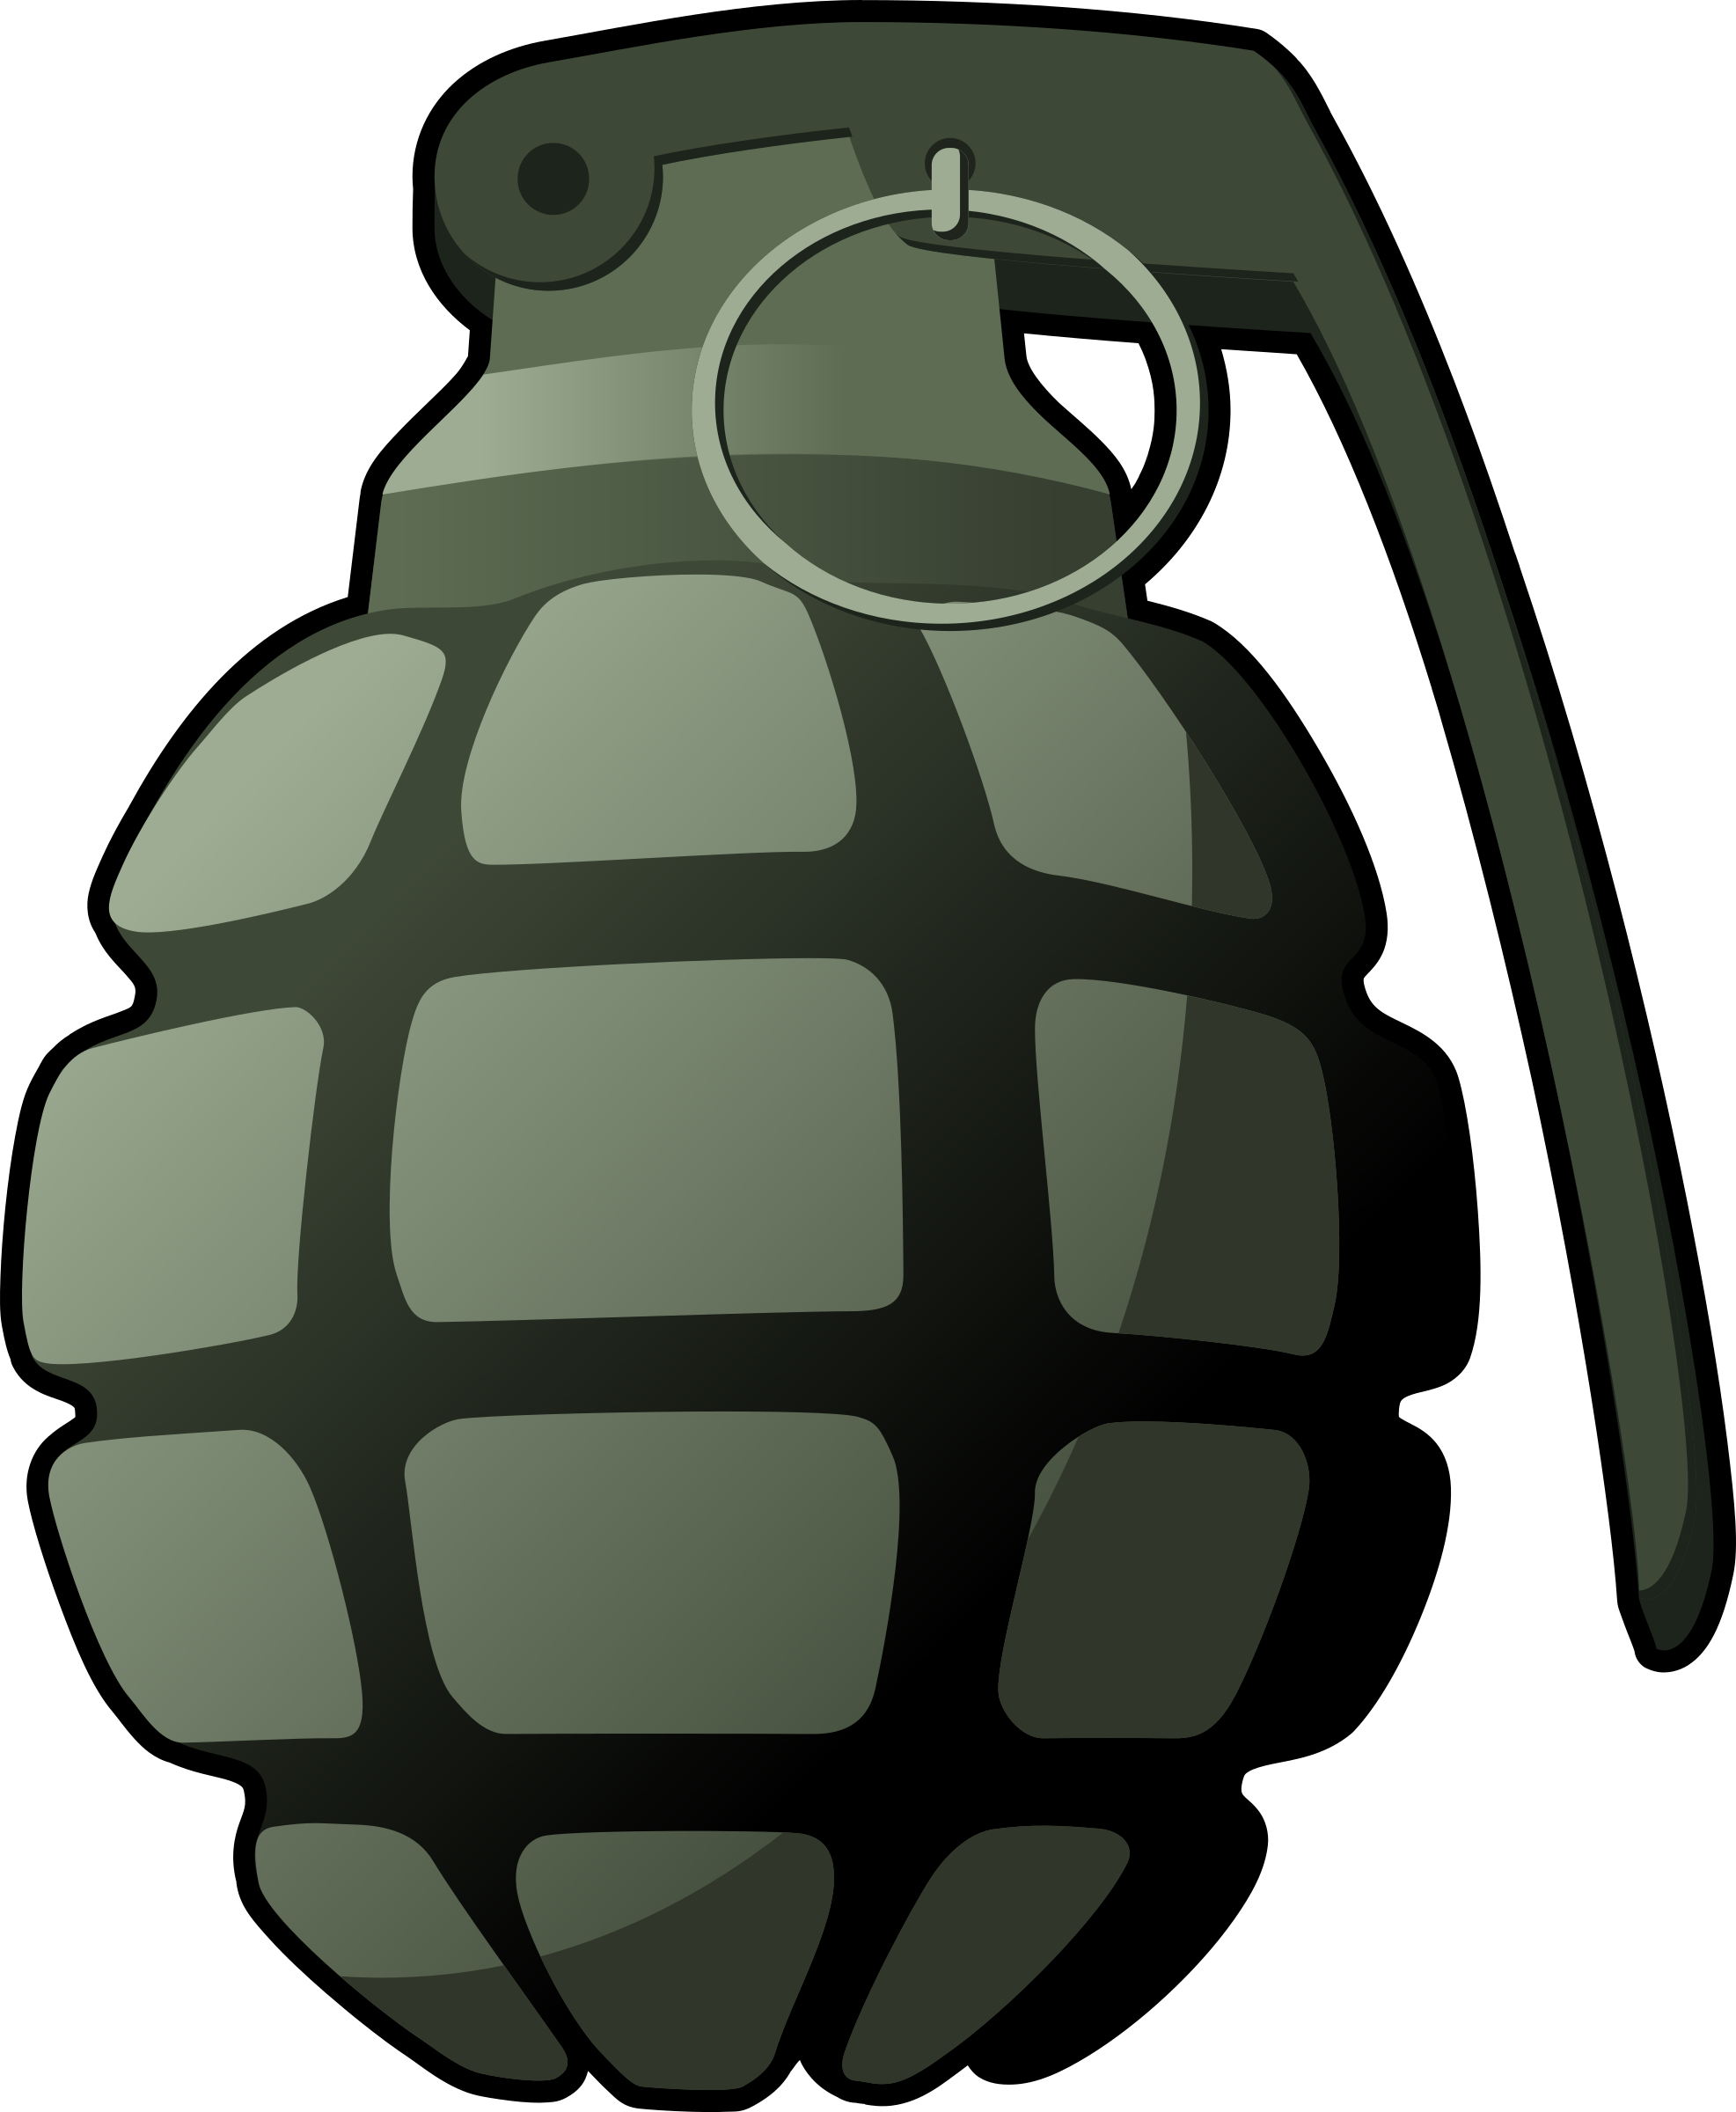 Handgrenade big image png. Curtains clipart animated